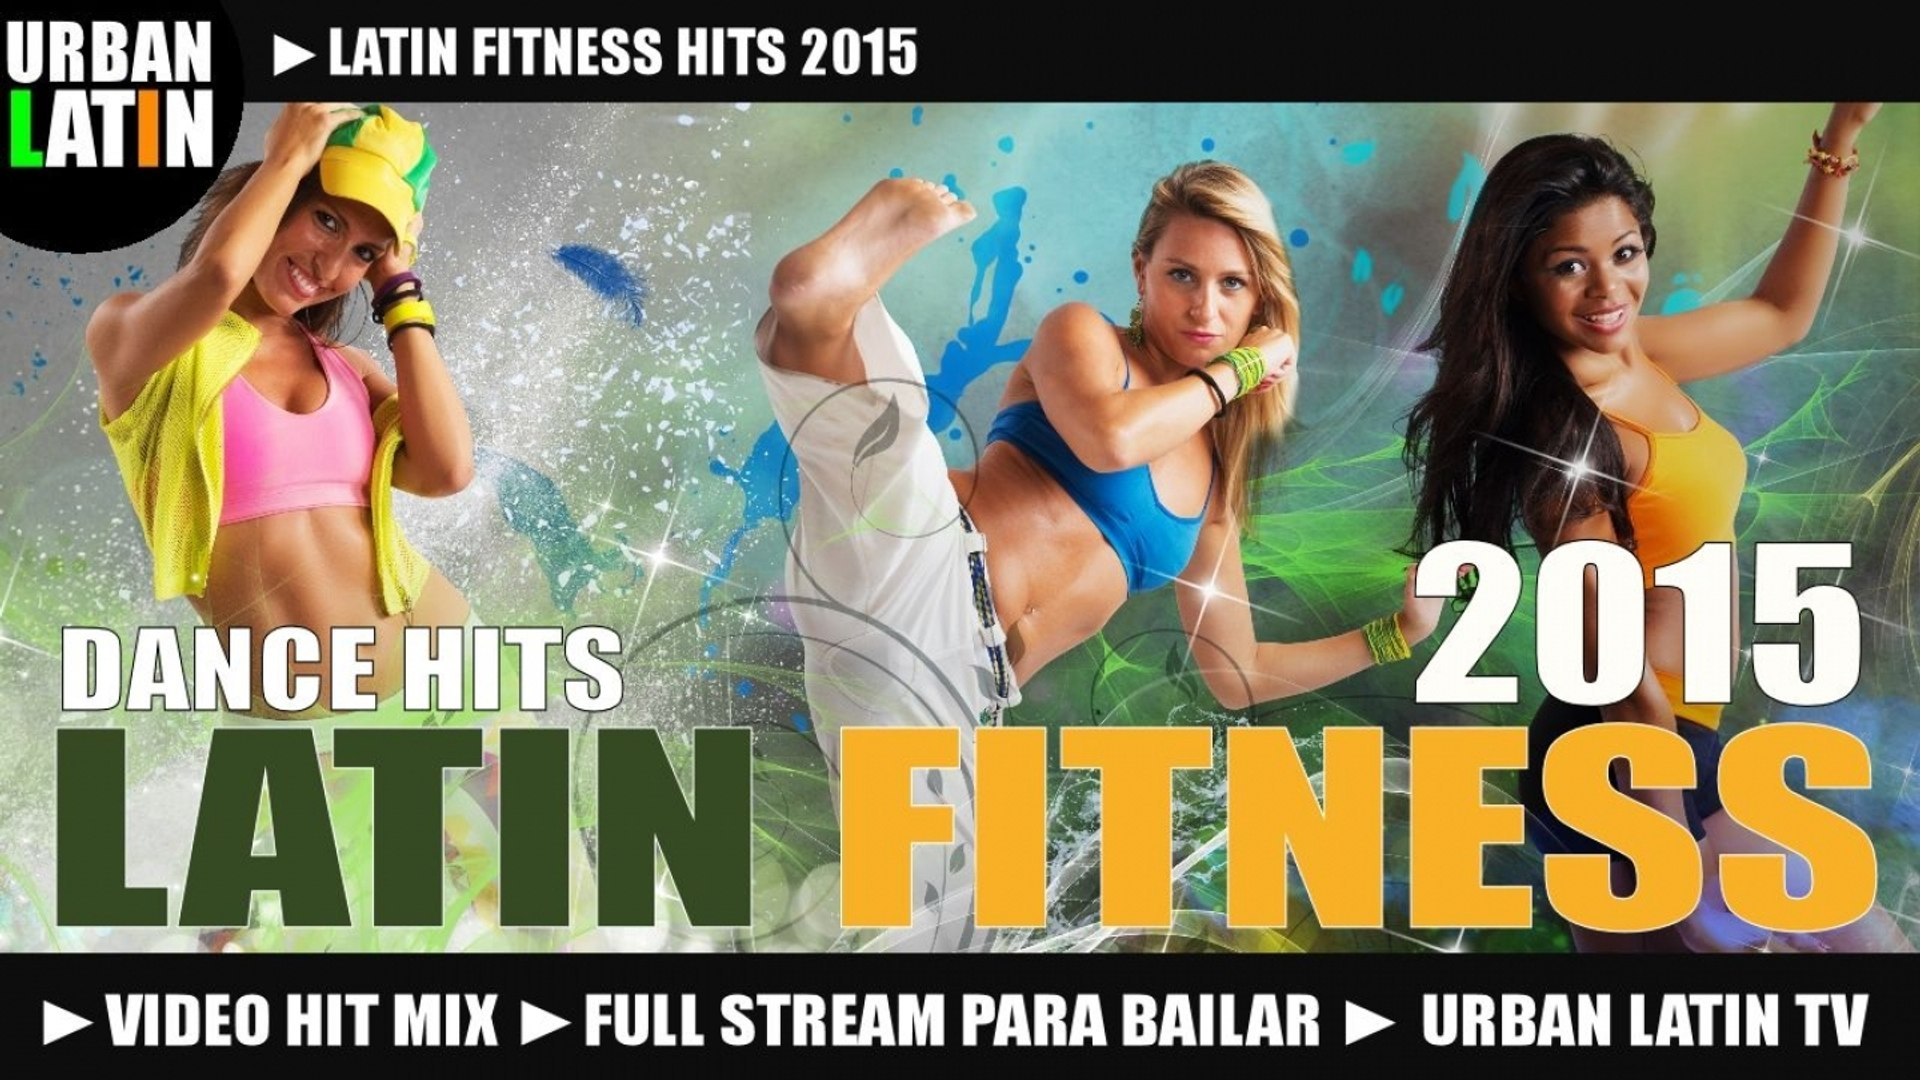 LATIN FITNESS 2015 ► BEST FITNESS DANCE HITS 2015 ► FITNESS DANCE PARTY 2015 ► VIDEO HIT MIX